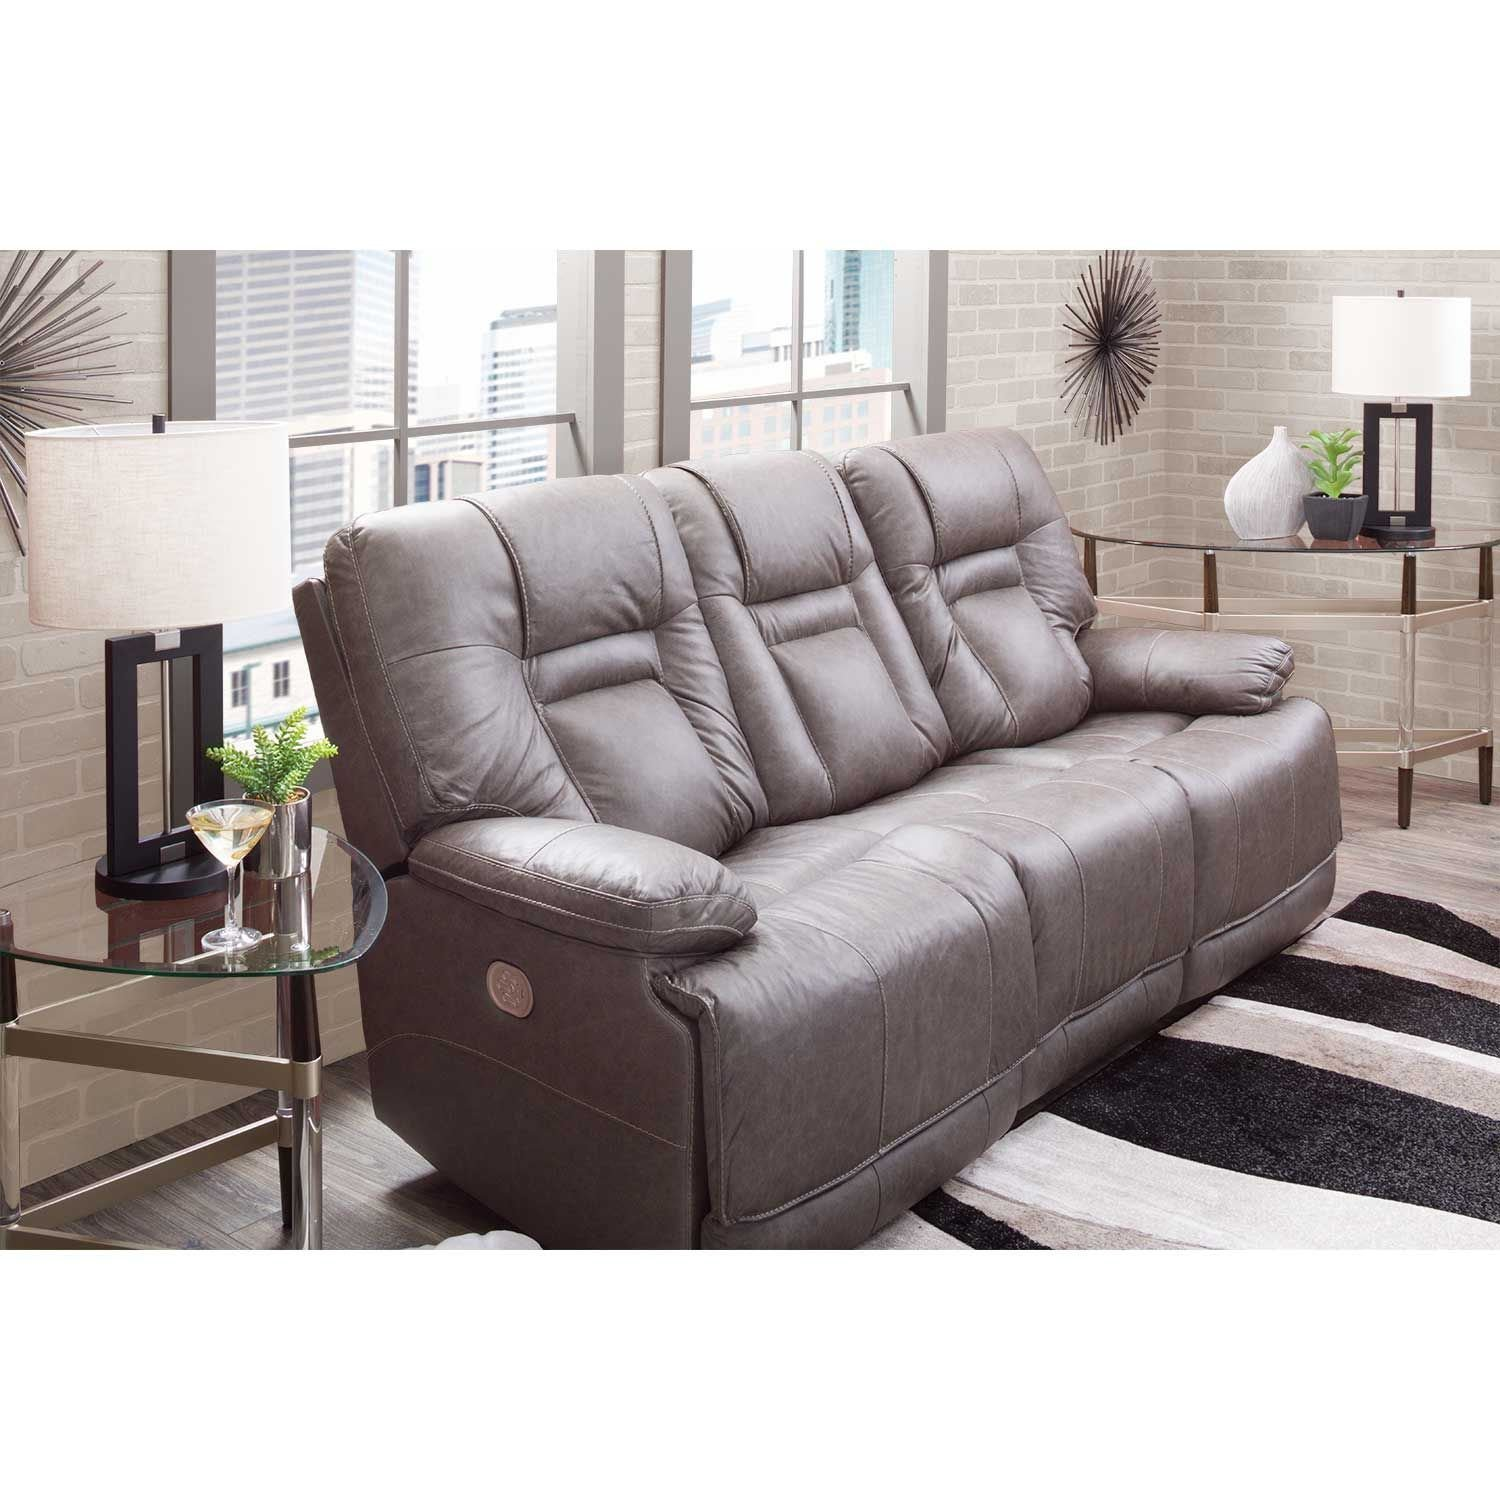 Picture of Wurstrow Smoke Italian Leather Power Reclining Sofa